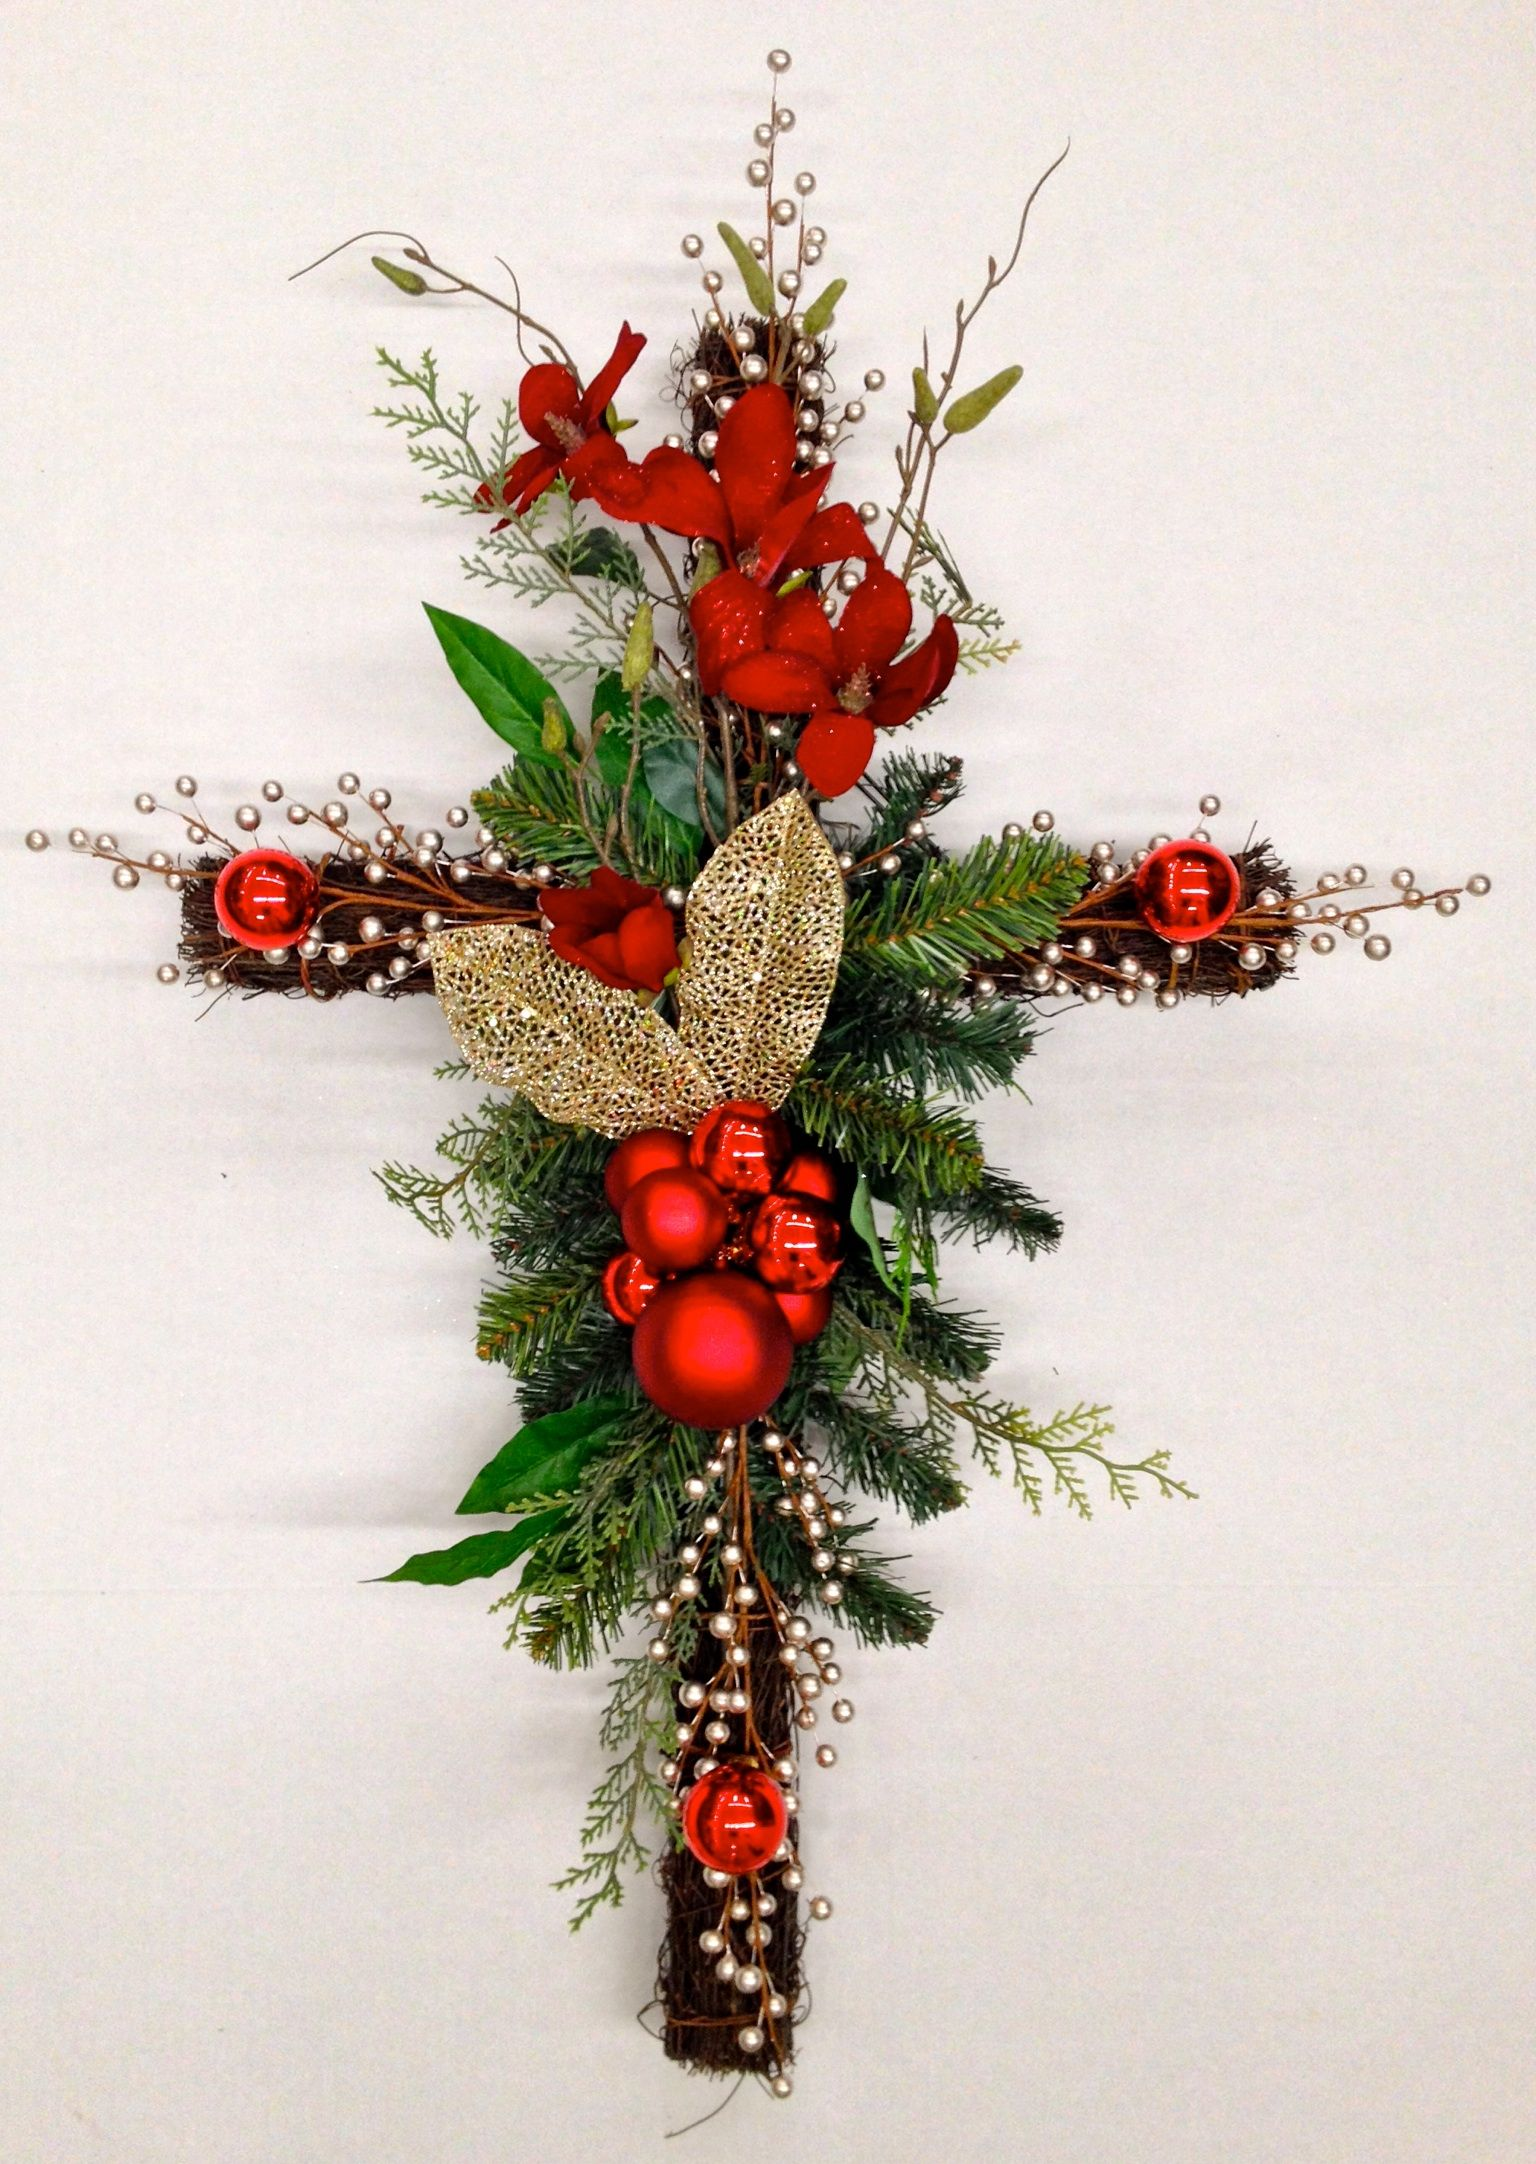 Quot Twig Memorial Red Floral Cross Quot Christmas Holiday 2013